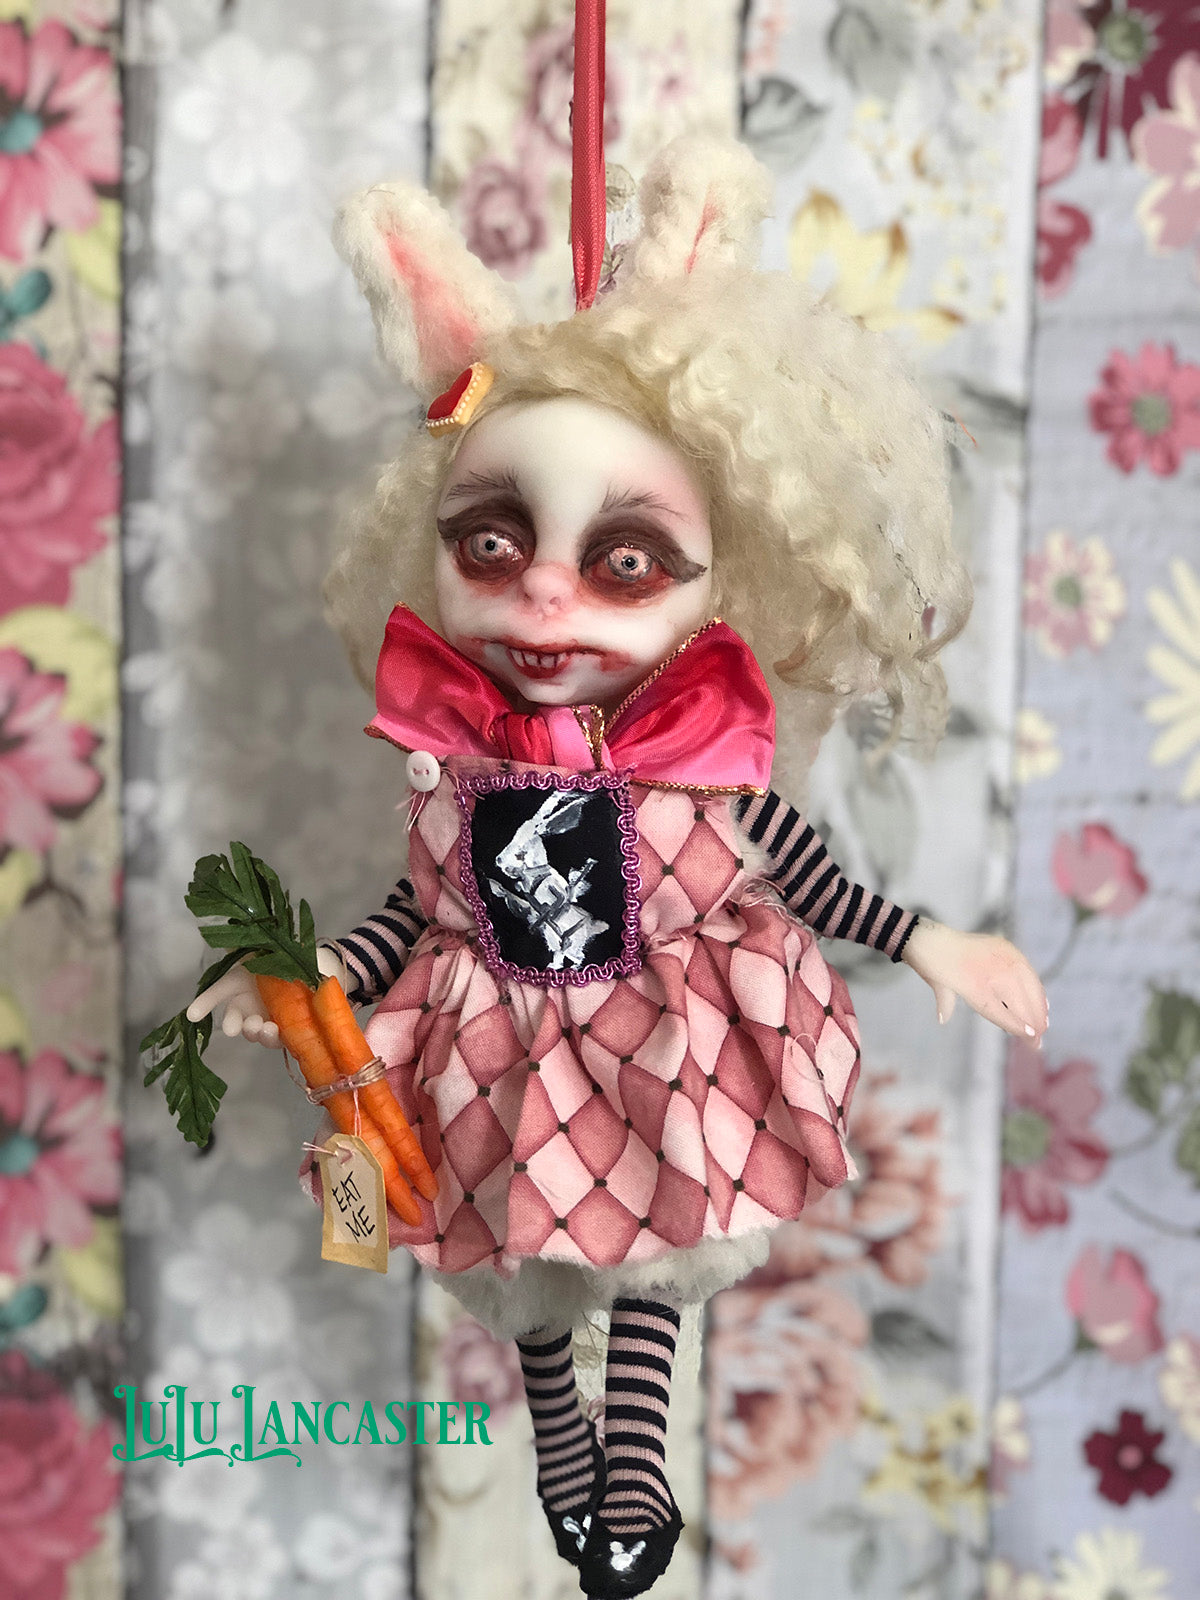 Alice BunnBunn the Vampire Bunny Mini hanging OOAK LuLu Lancaster Art Doll